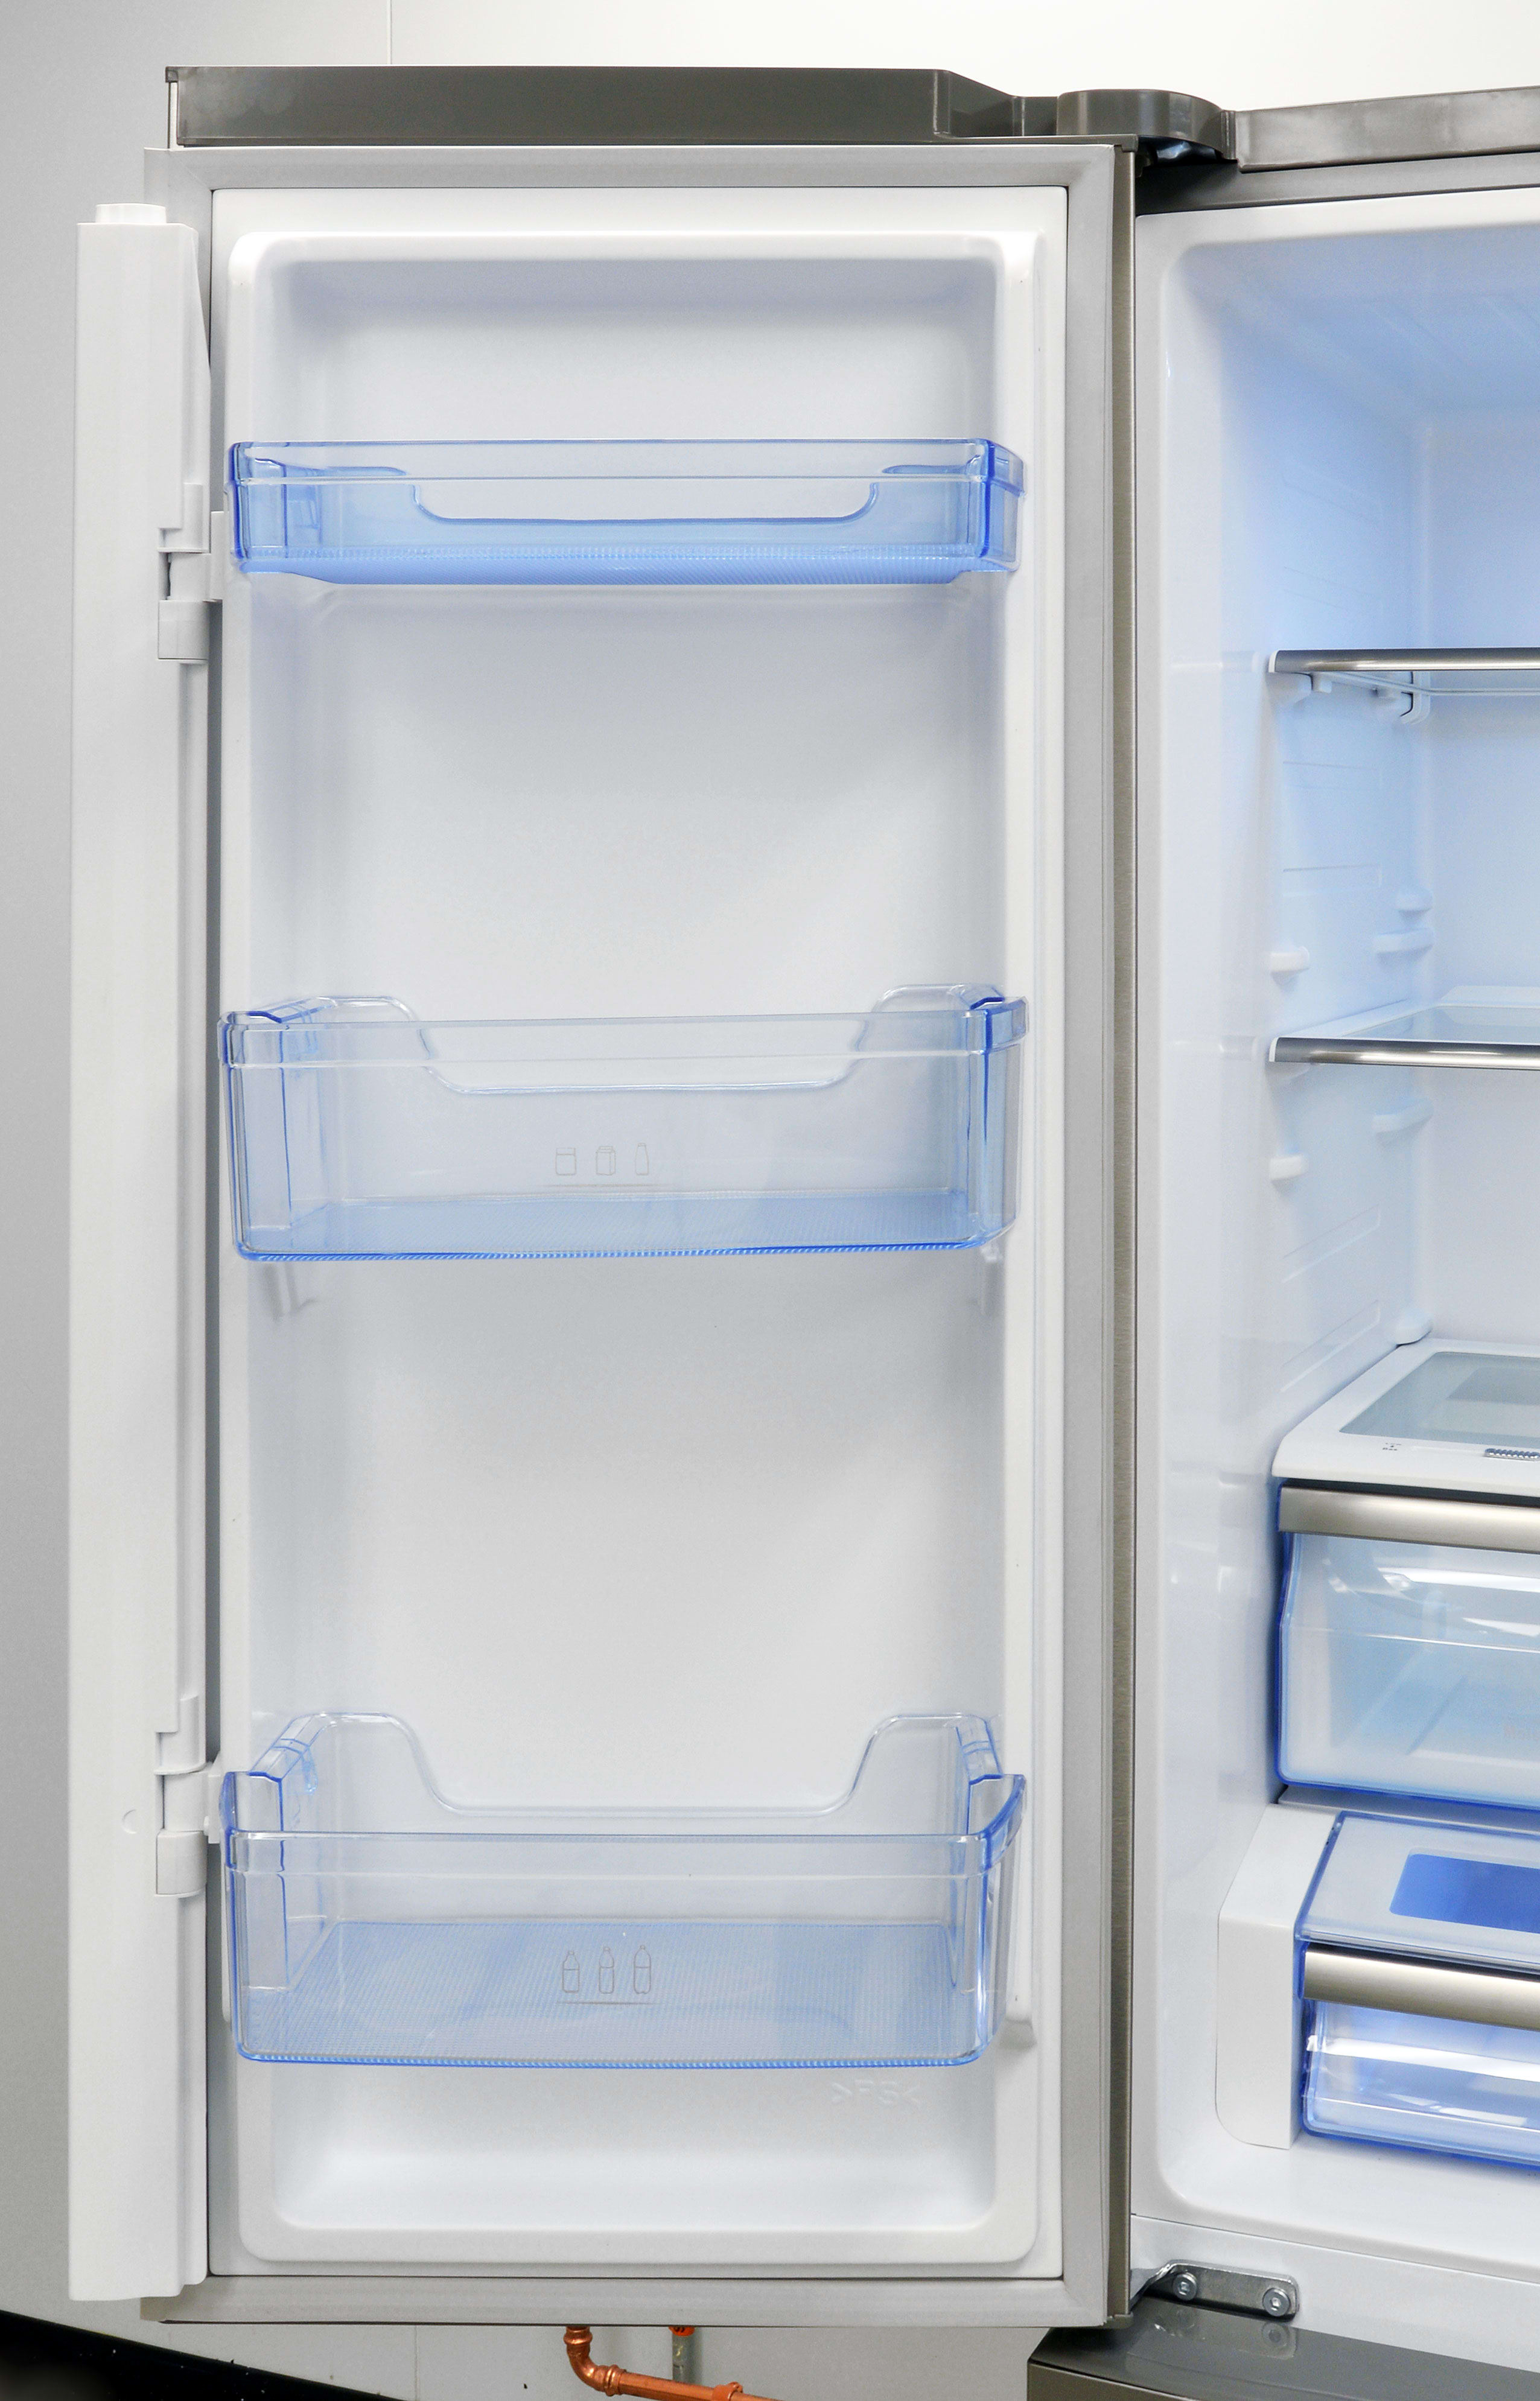 The Hisense RF20N6ASE's left-hand door has three shelves, all of which are deep enough for gallon storage.